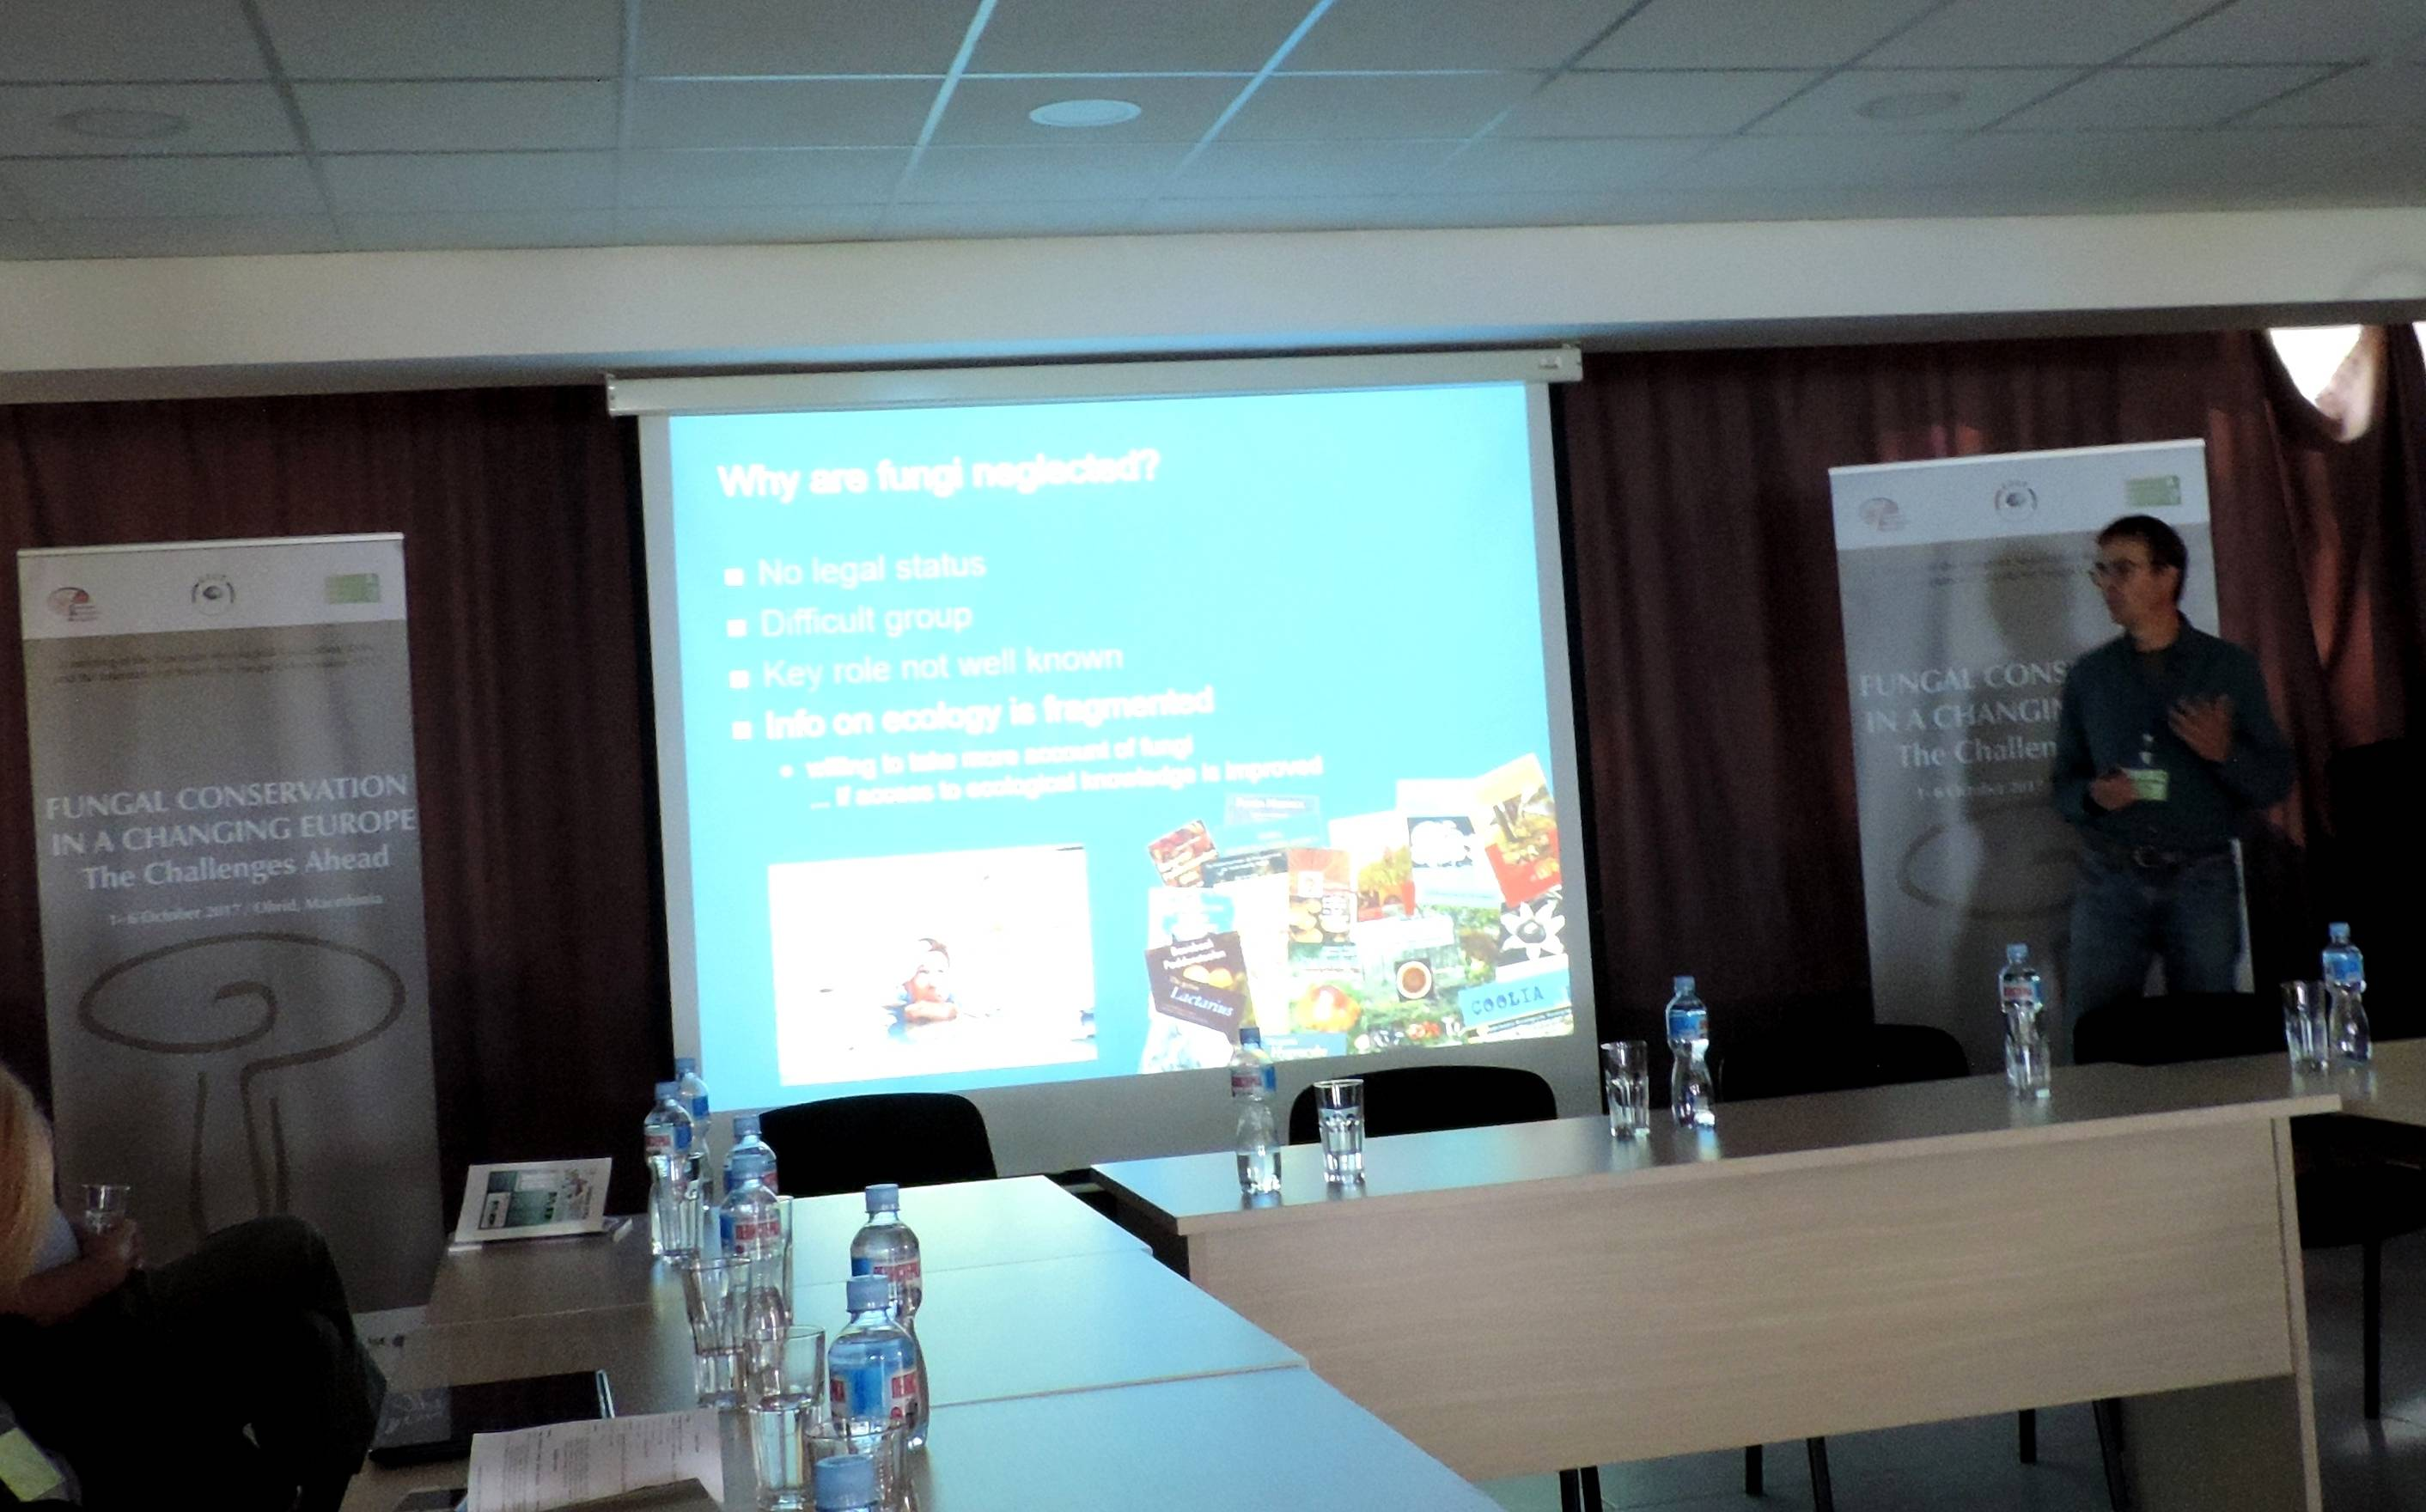 Wim Ozinga on Fungal Conservation Challenges in Netherlands